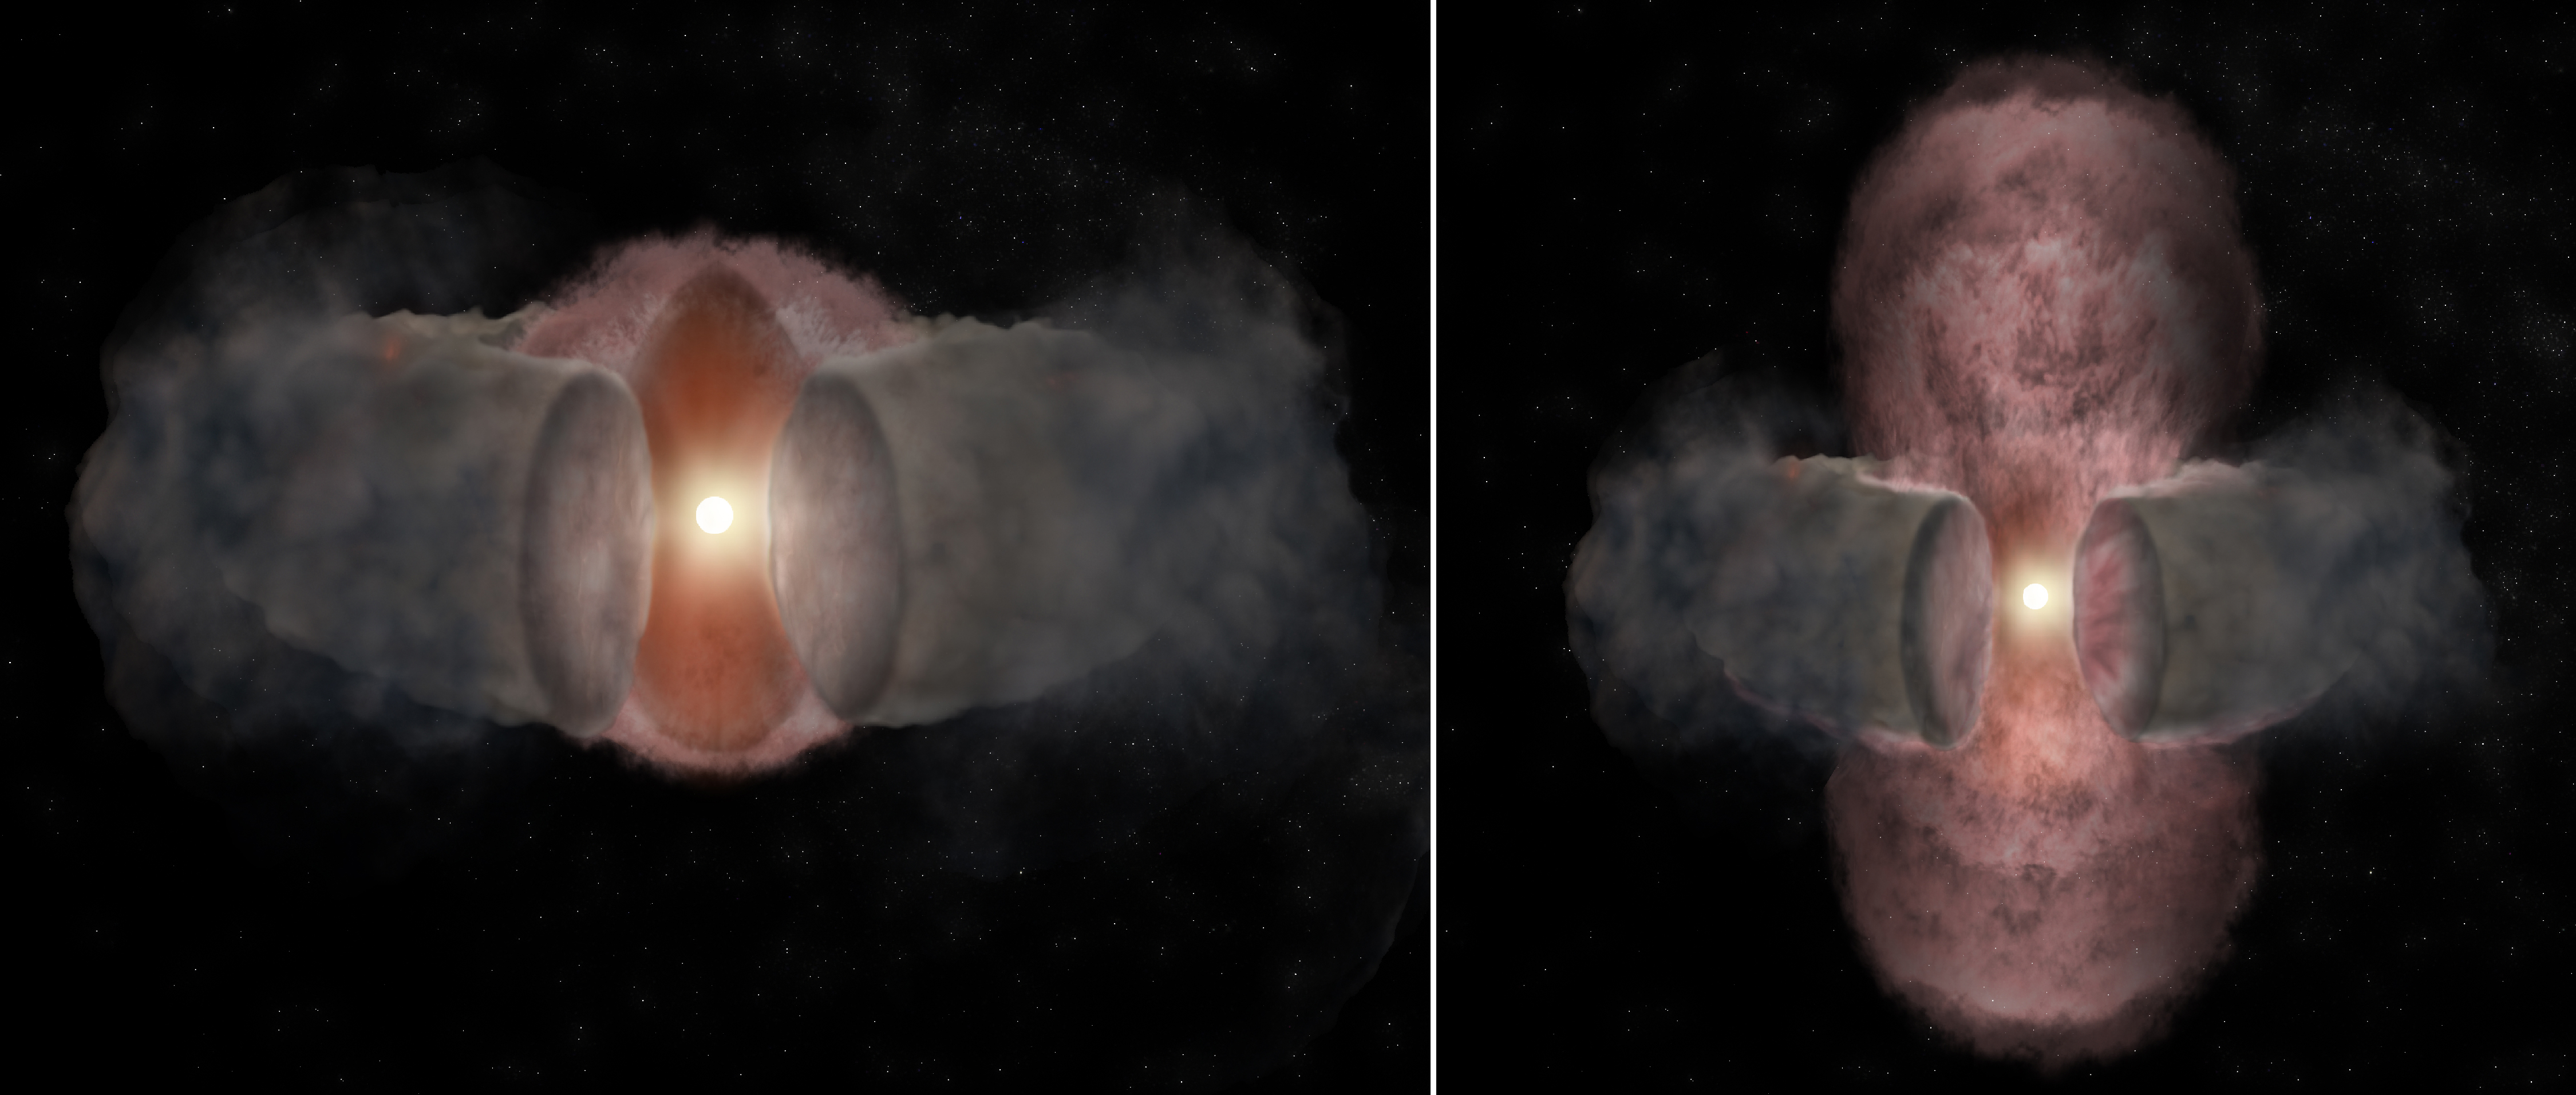 Unfolding Saga of Massive Star Formation